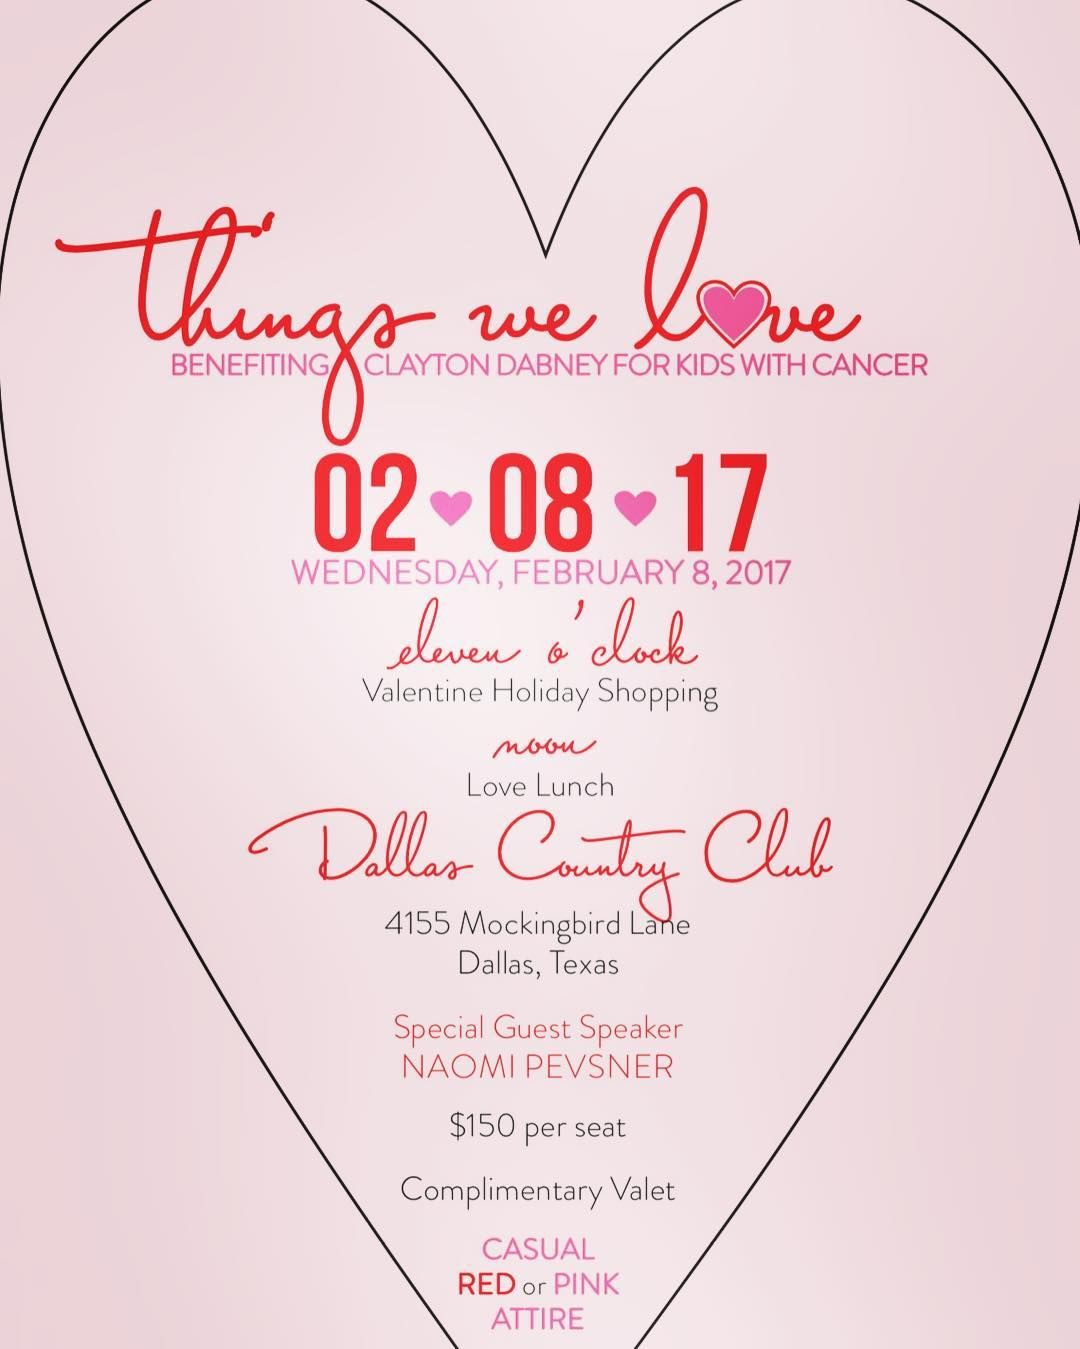 Things We Loveluncheon So Thrilled To Be A Vendor For Such A